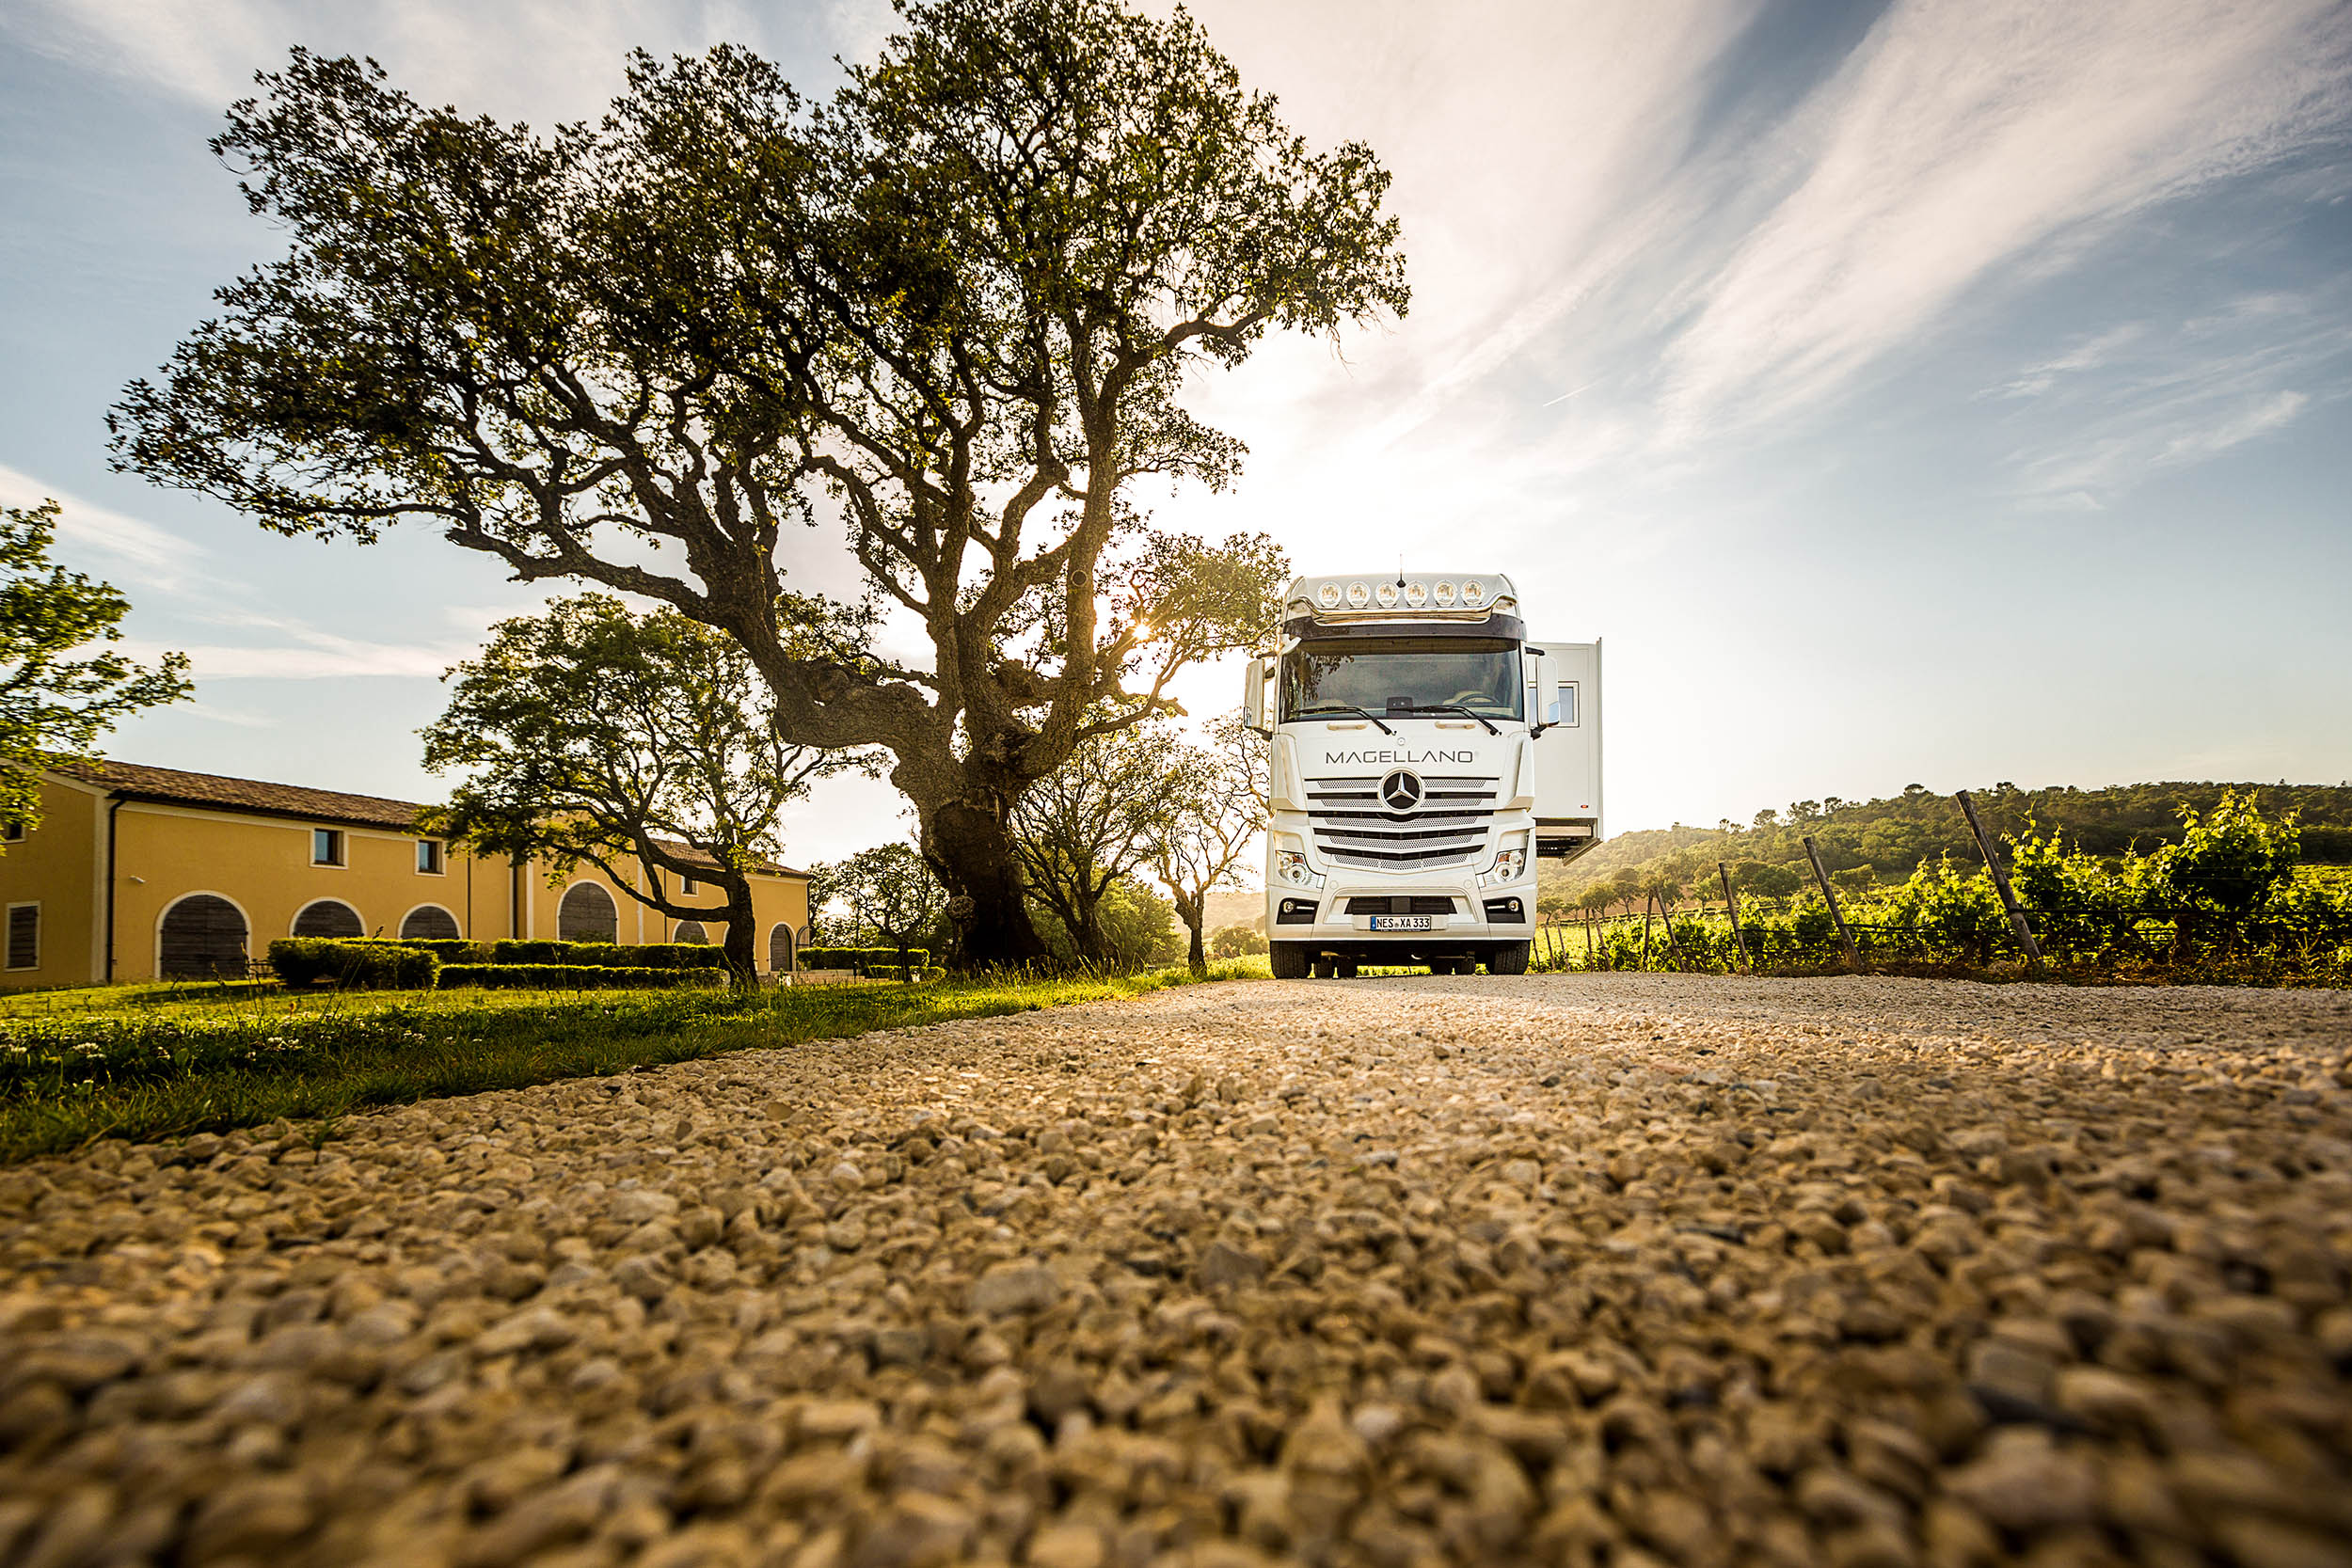 Chateau Saint Maur Photography Magellano Motorhome Luxury Photography France